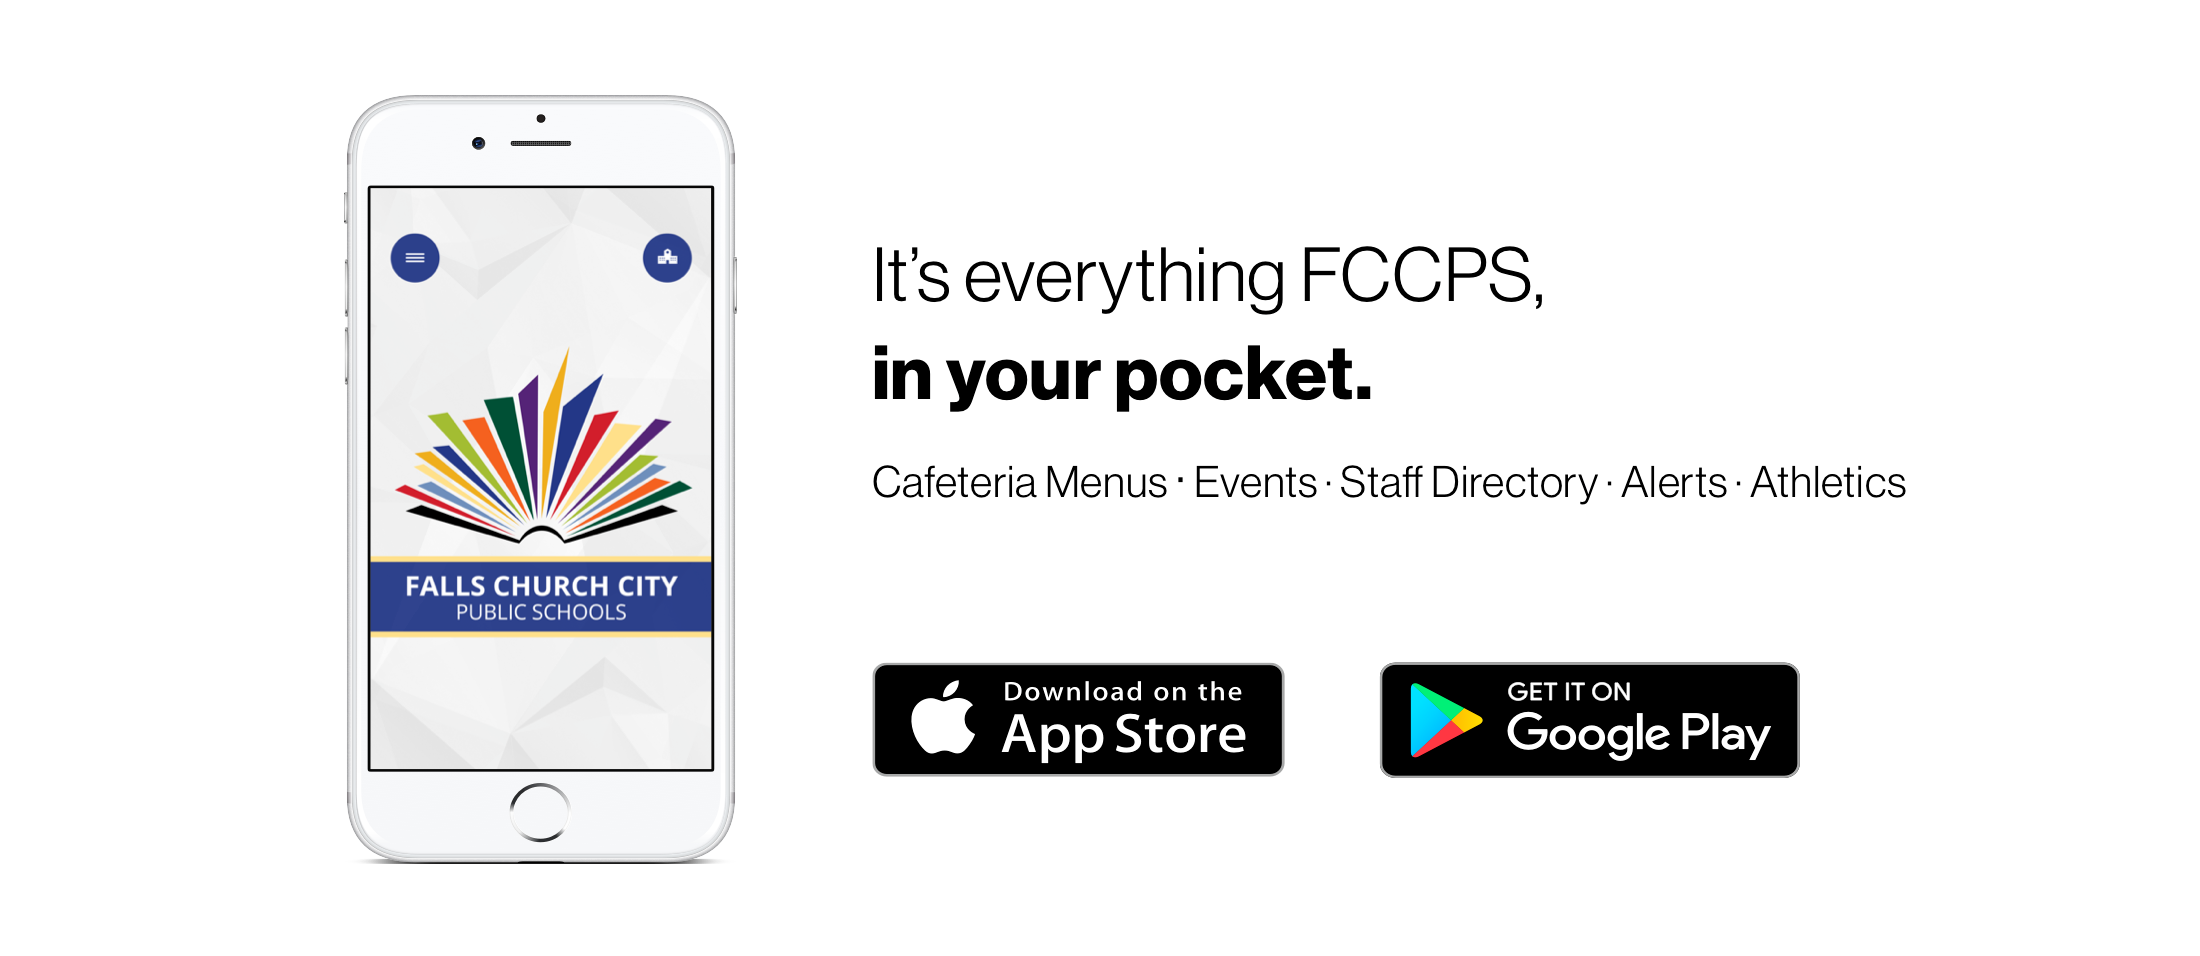 FCCPS app can be downloaded from the App Store and The Google Play